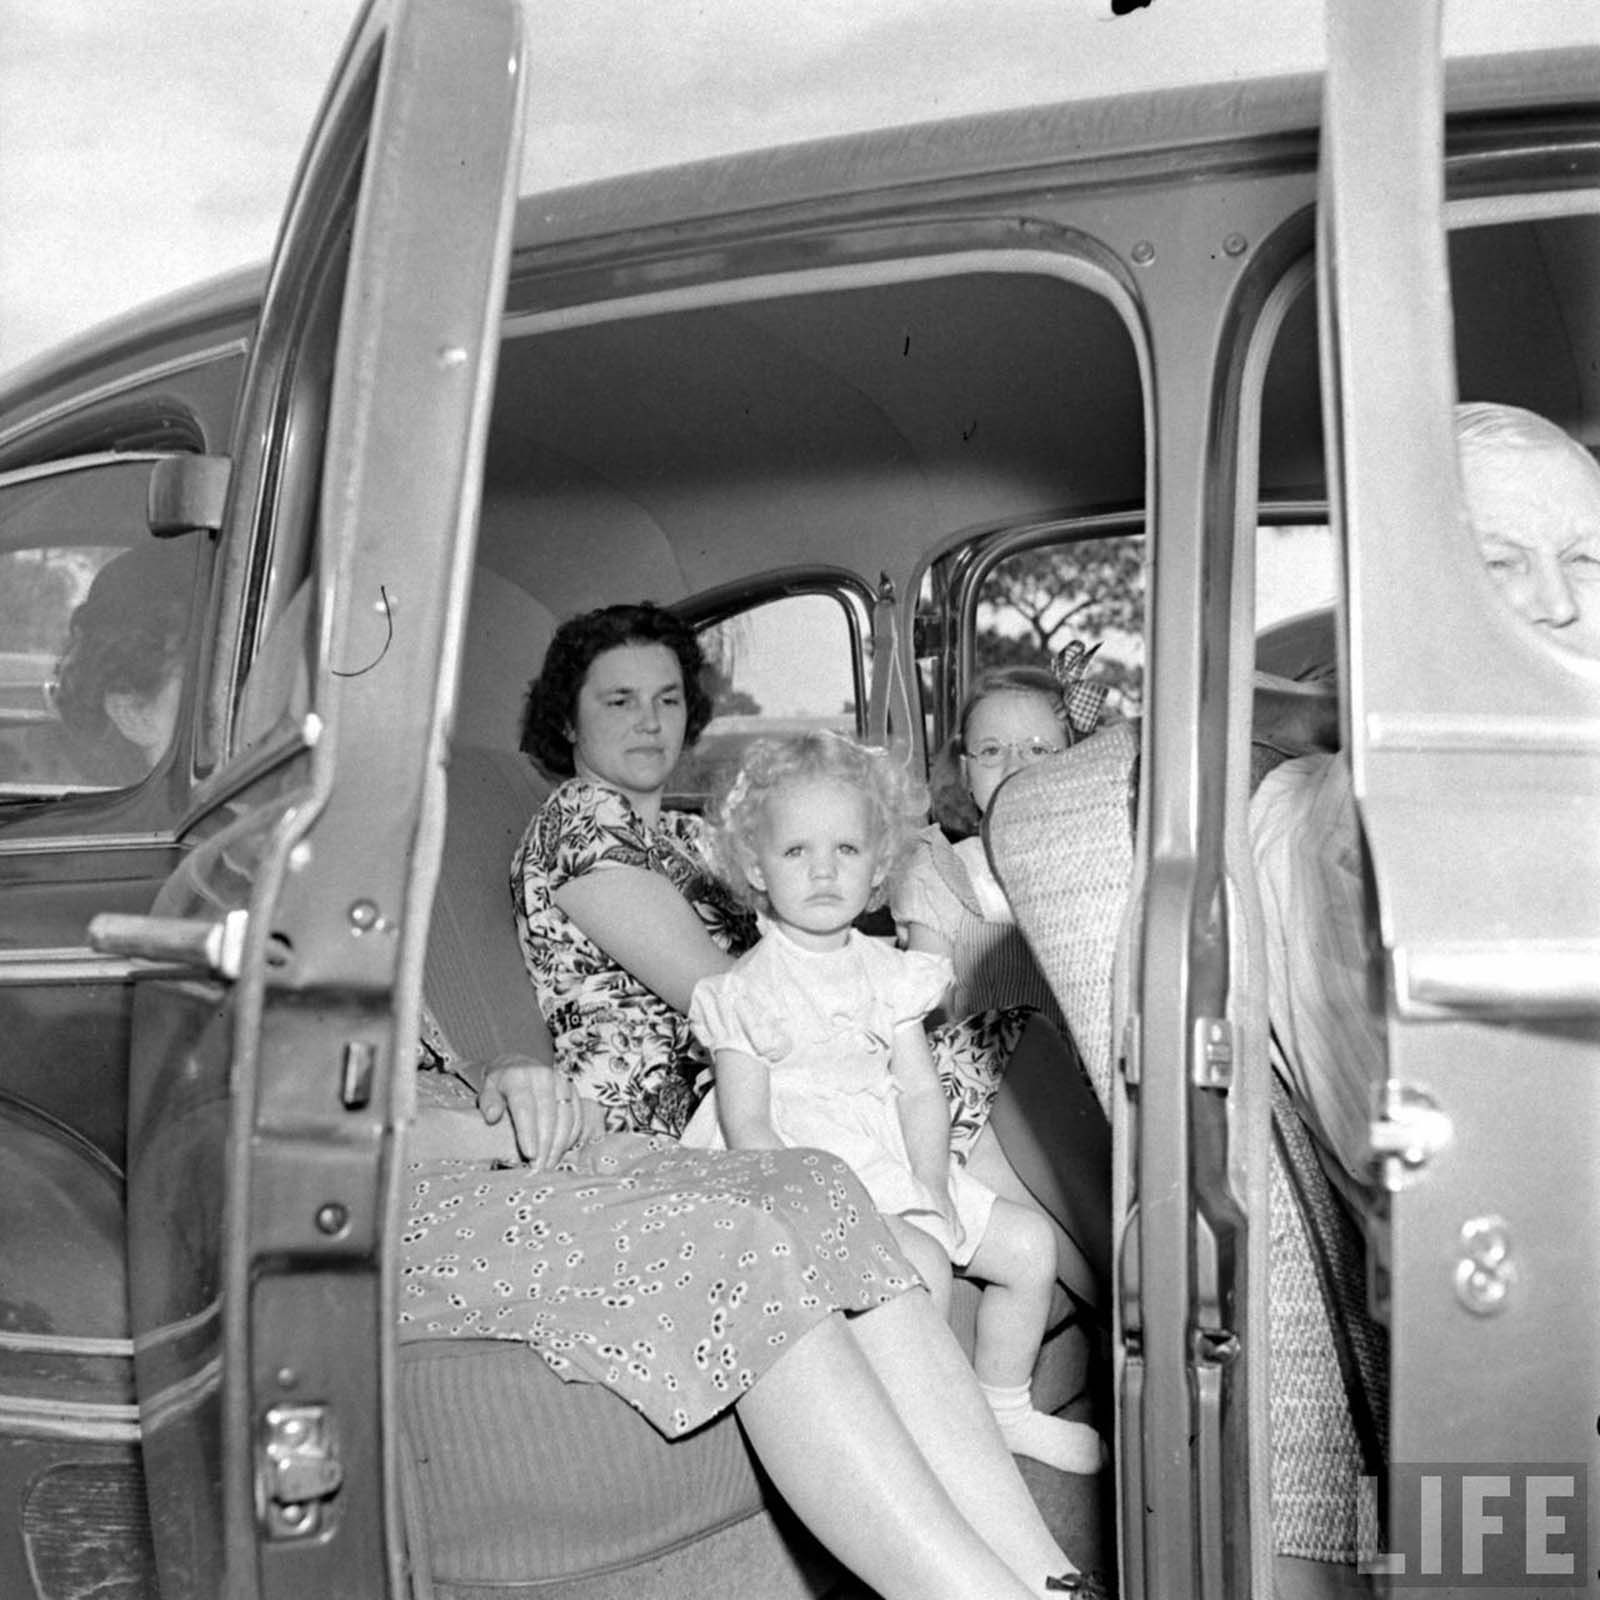 A family being comfortable in their own car while attending the church.